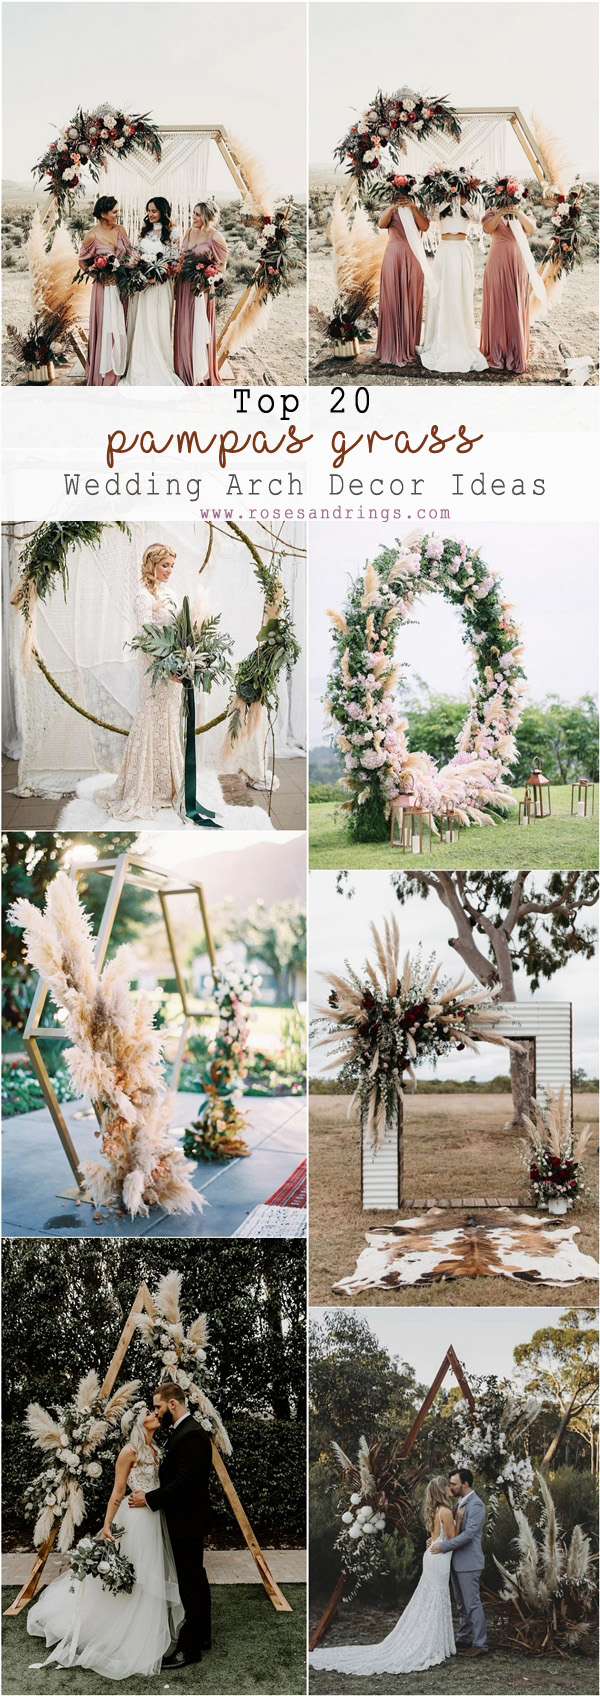 Top 20 Bohemian Pampas Grass Wedding Arches Roses Amp Rings